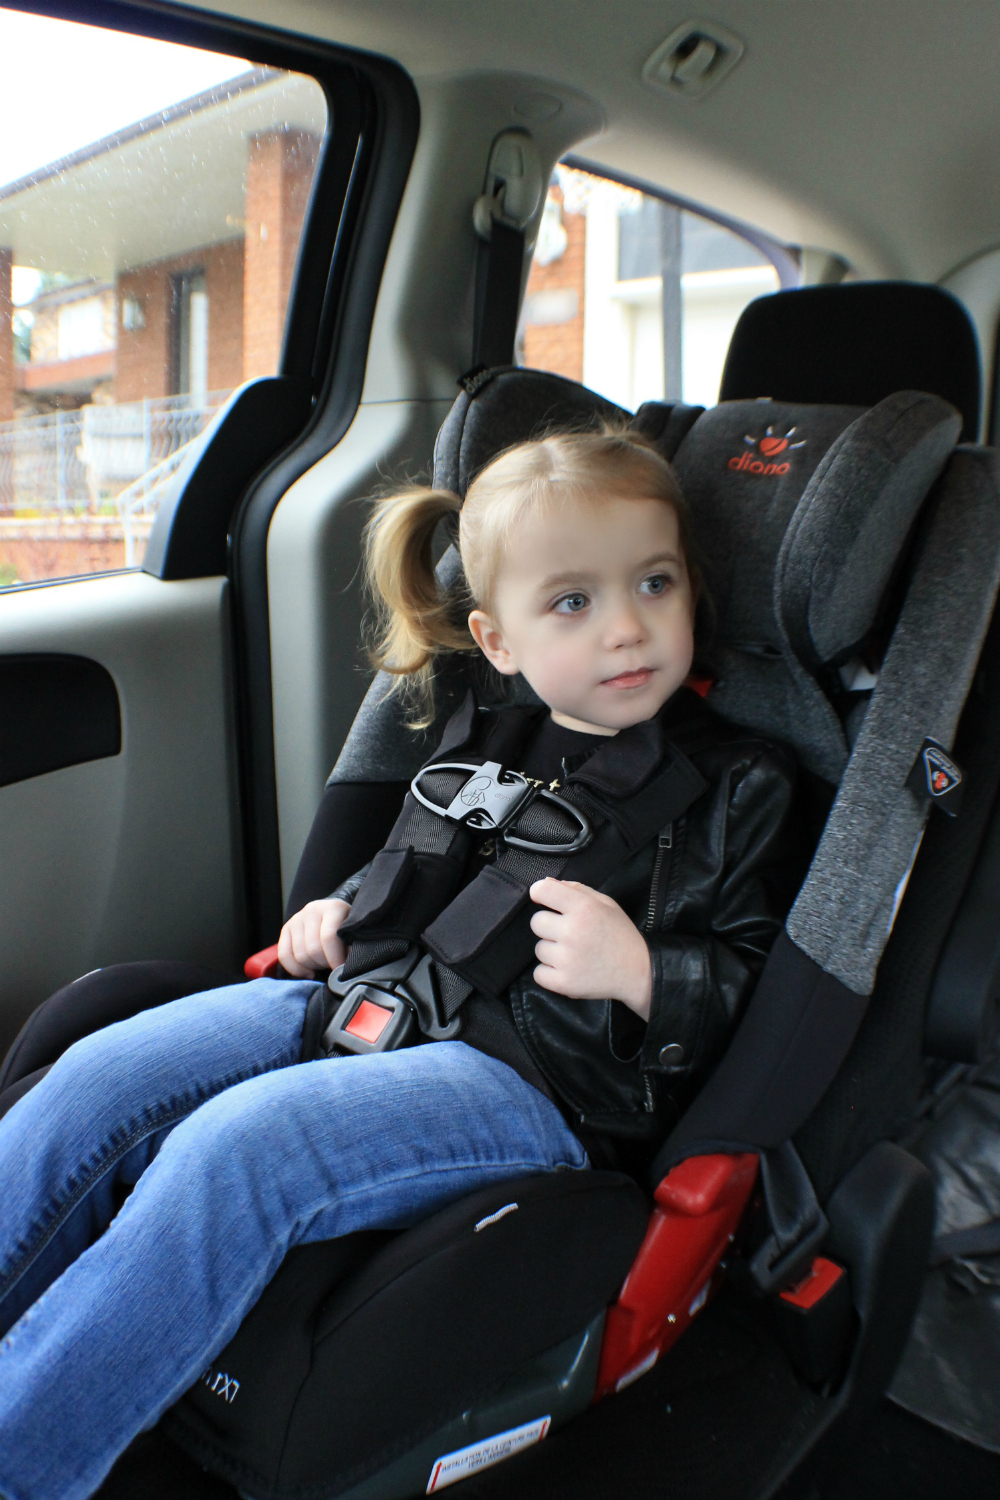 Unlike Our Previous Car Seat The Diono Radian RXT Has Superior Comfort I Can Already Tell That Straps Are Not Digging Into Her And She Is